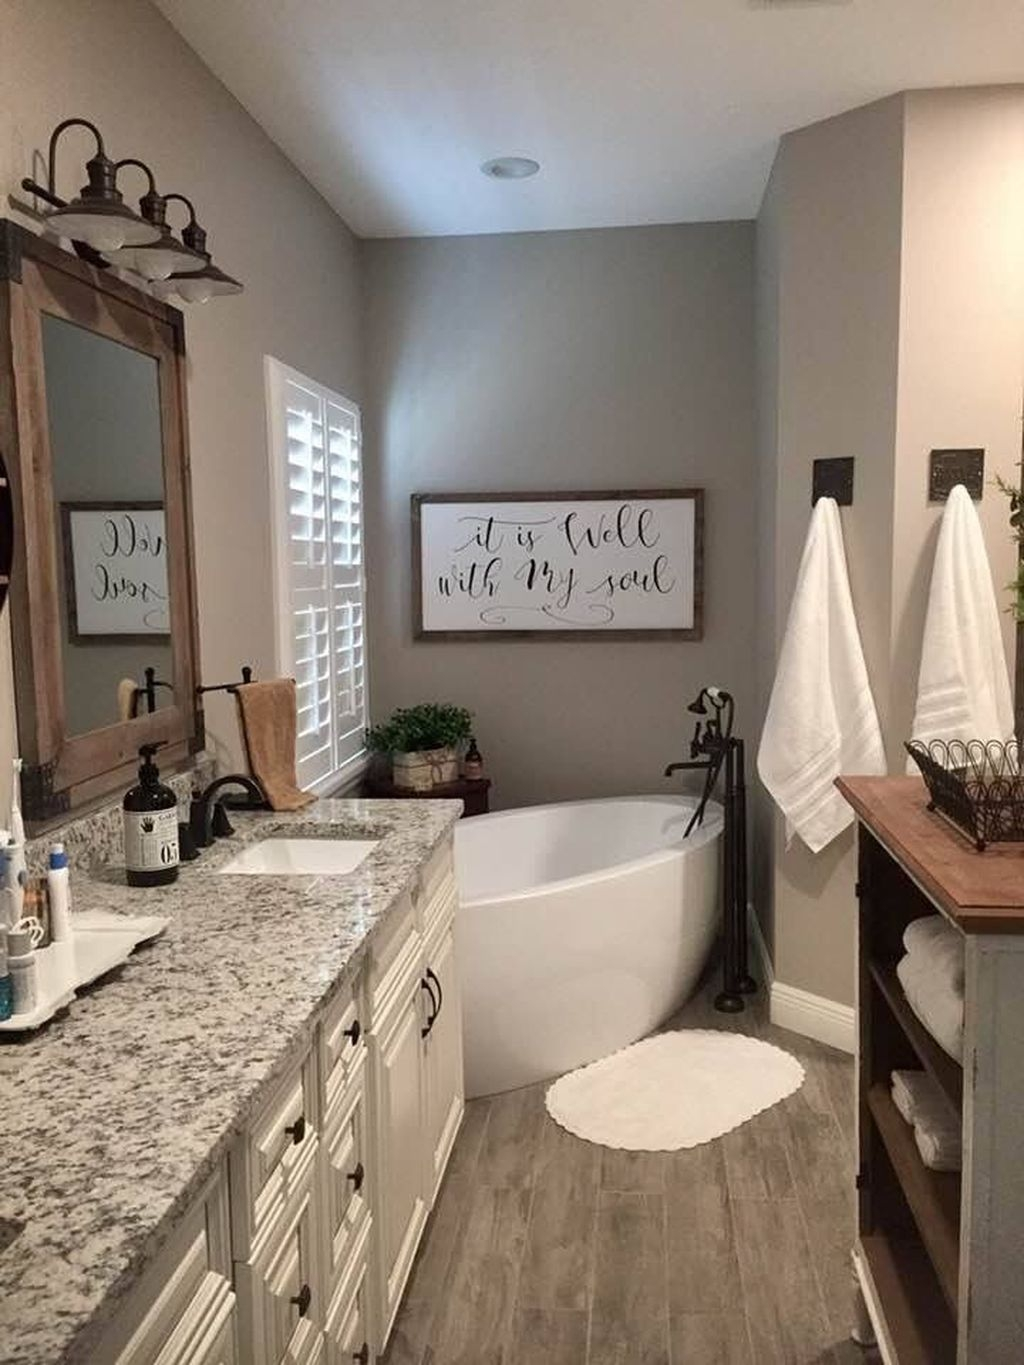 Cheap Bathroom Remodel Organization Ideas24